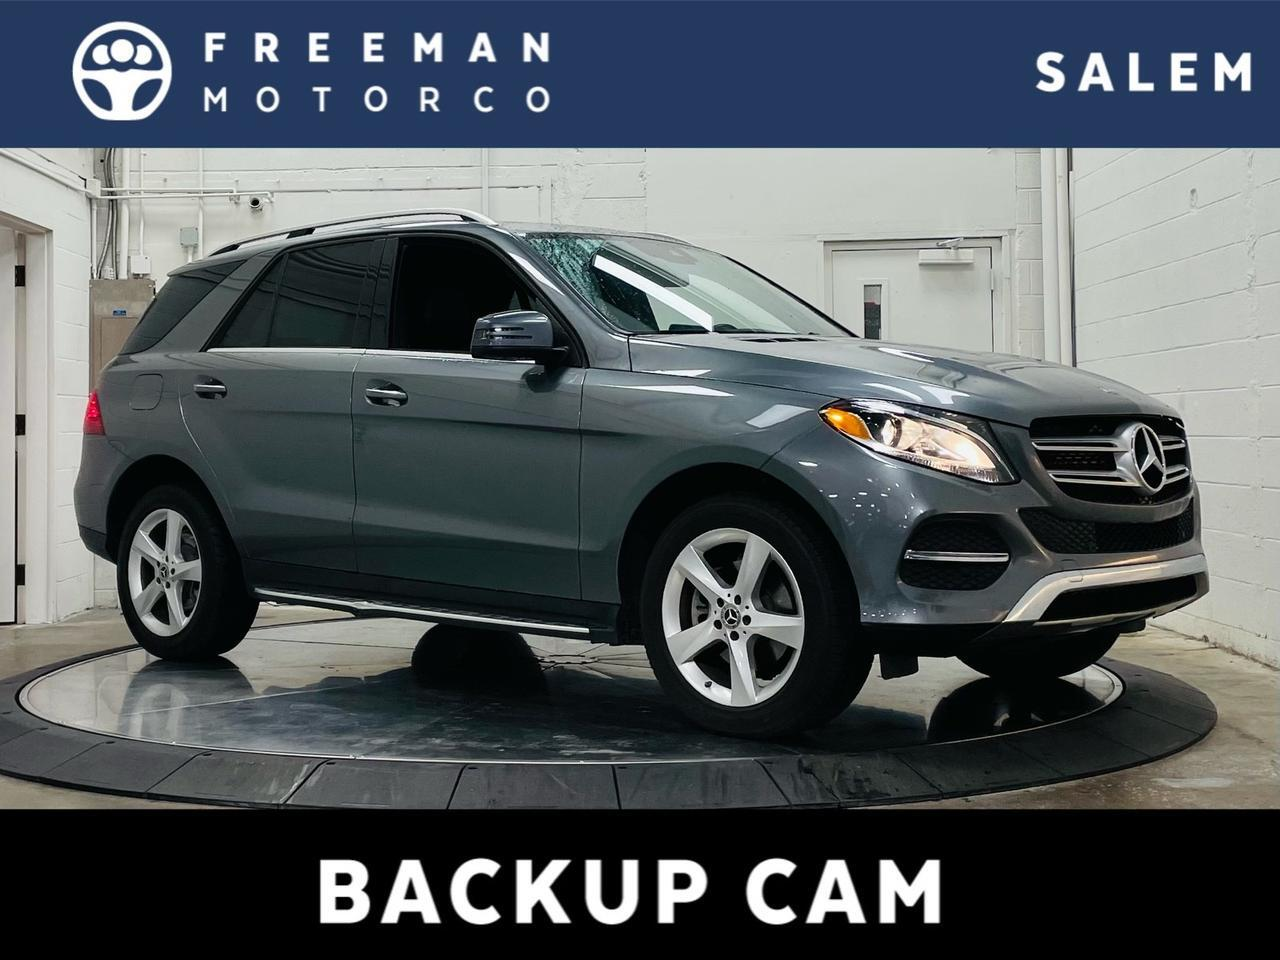 2018 Mercedes-Benz GLE 350 4MATIC Harman Kardon Sound Backup Cam Salem OR